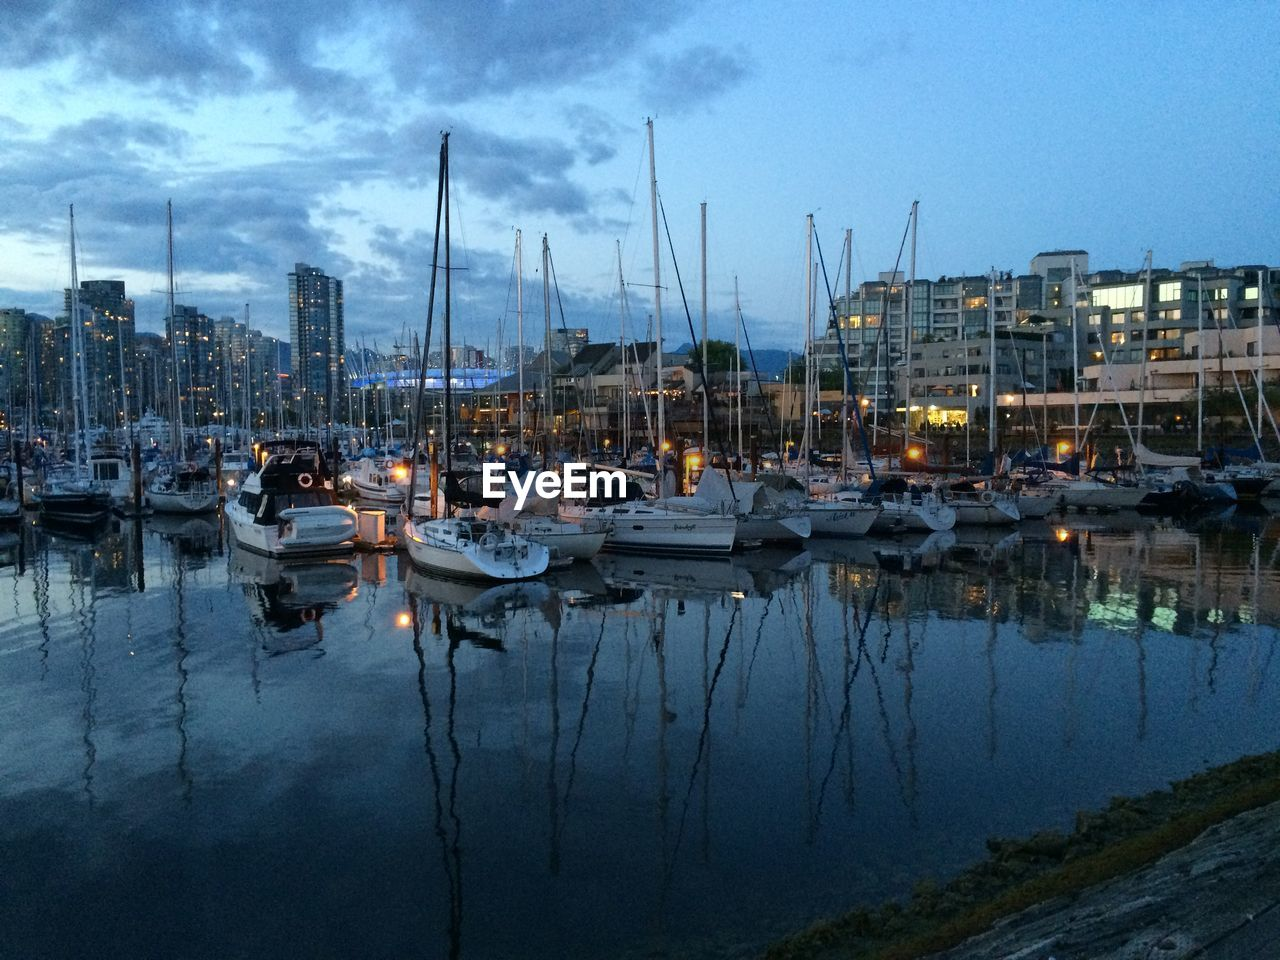 Sailboats Moored On Harbor By City Against Sky At Sunset